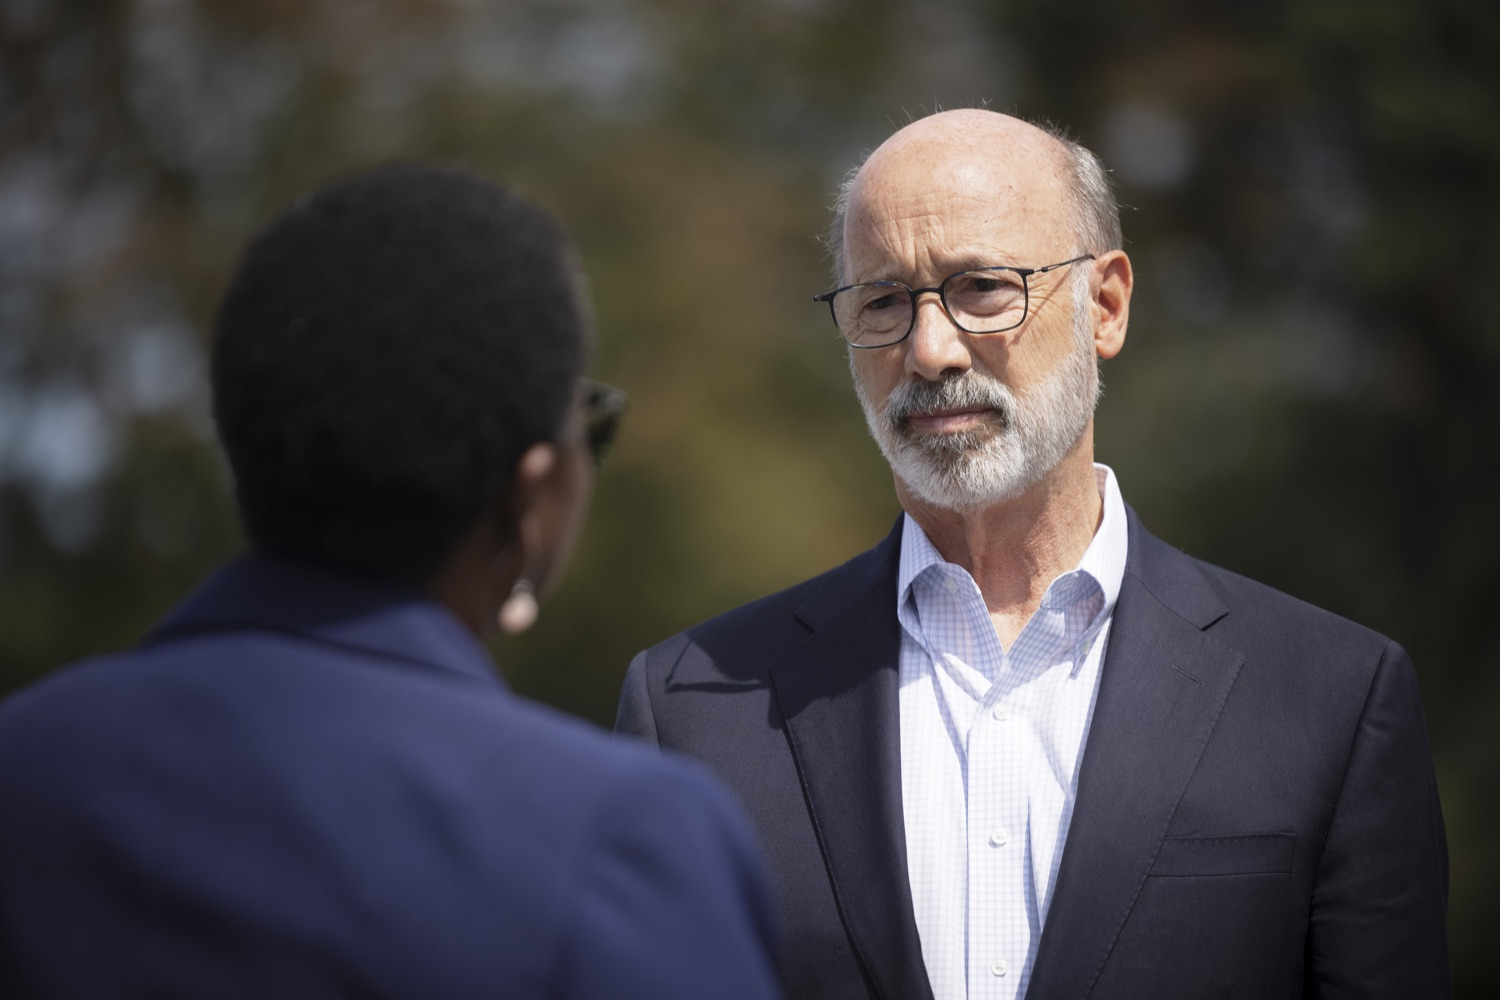 """<a href=""""https://filesource.wostreaming.net/commonwealthofpa/photo/19111_gov_parkVaccines_dz_011.jpg"""" target=""""_blank"""">⇣Download Photo<br></a>Pennsylvania Governor Tom Wolf speaking with Acting Physician General Dr. Denise Johnson. Governor Tom Wolf today announced that the Department of Health (DOH) and Department of Conservation and Natural Resources (DCNR) are partnering to hold COVID-19 vaccine clinics at five state parks across the commonwealth to help expand access to the COVID-19 vaccine.  Harrisburg, PA -- September 10, 2021"""